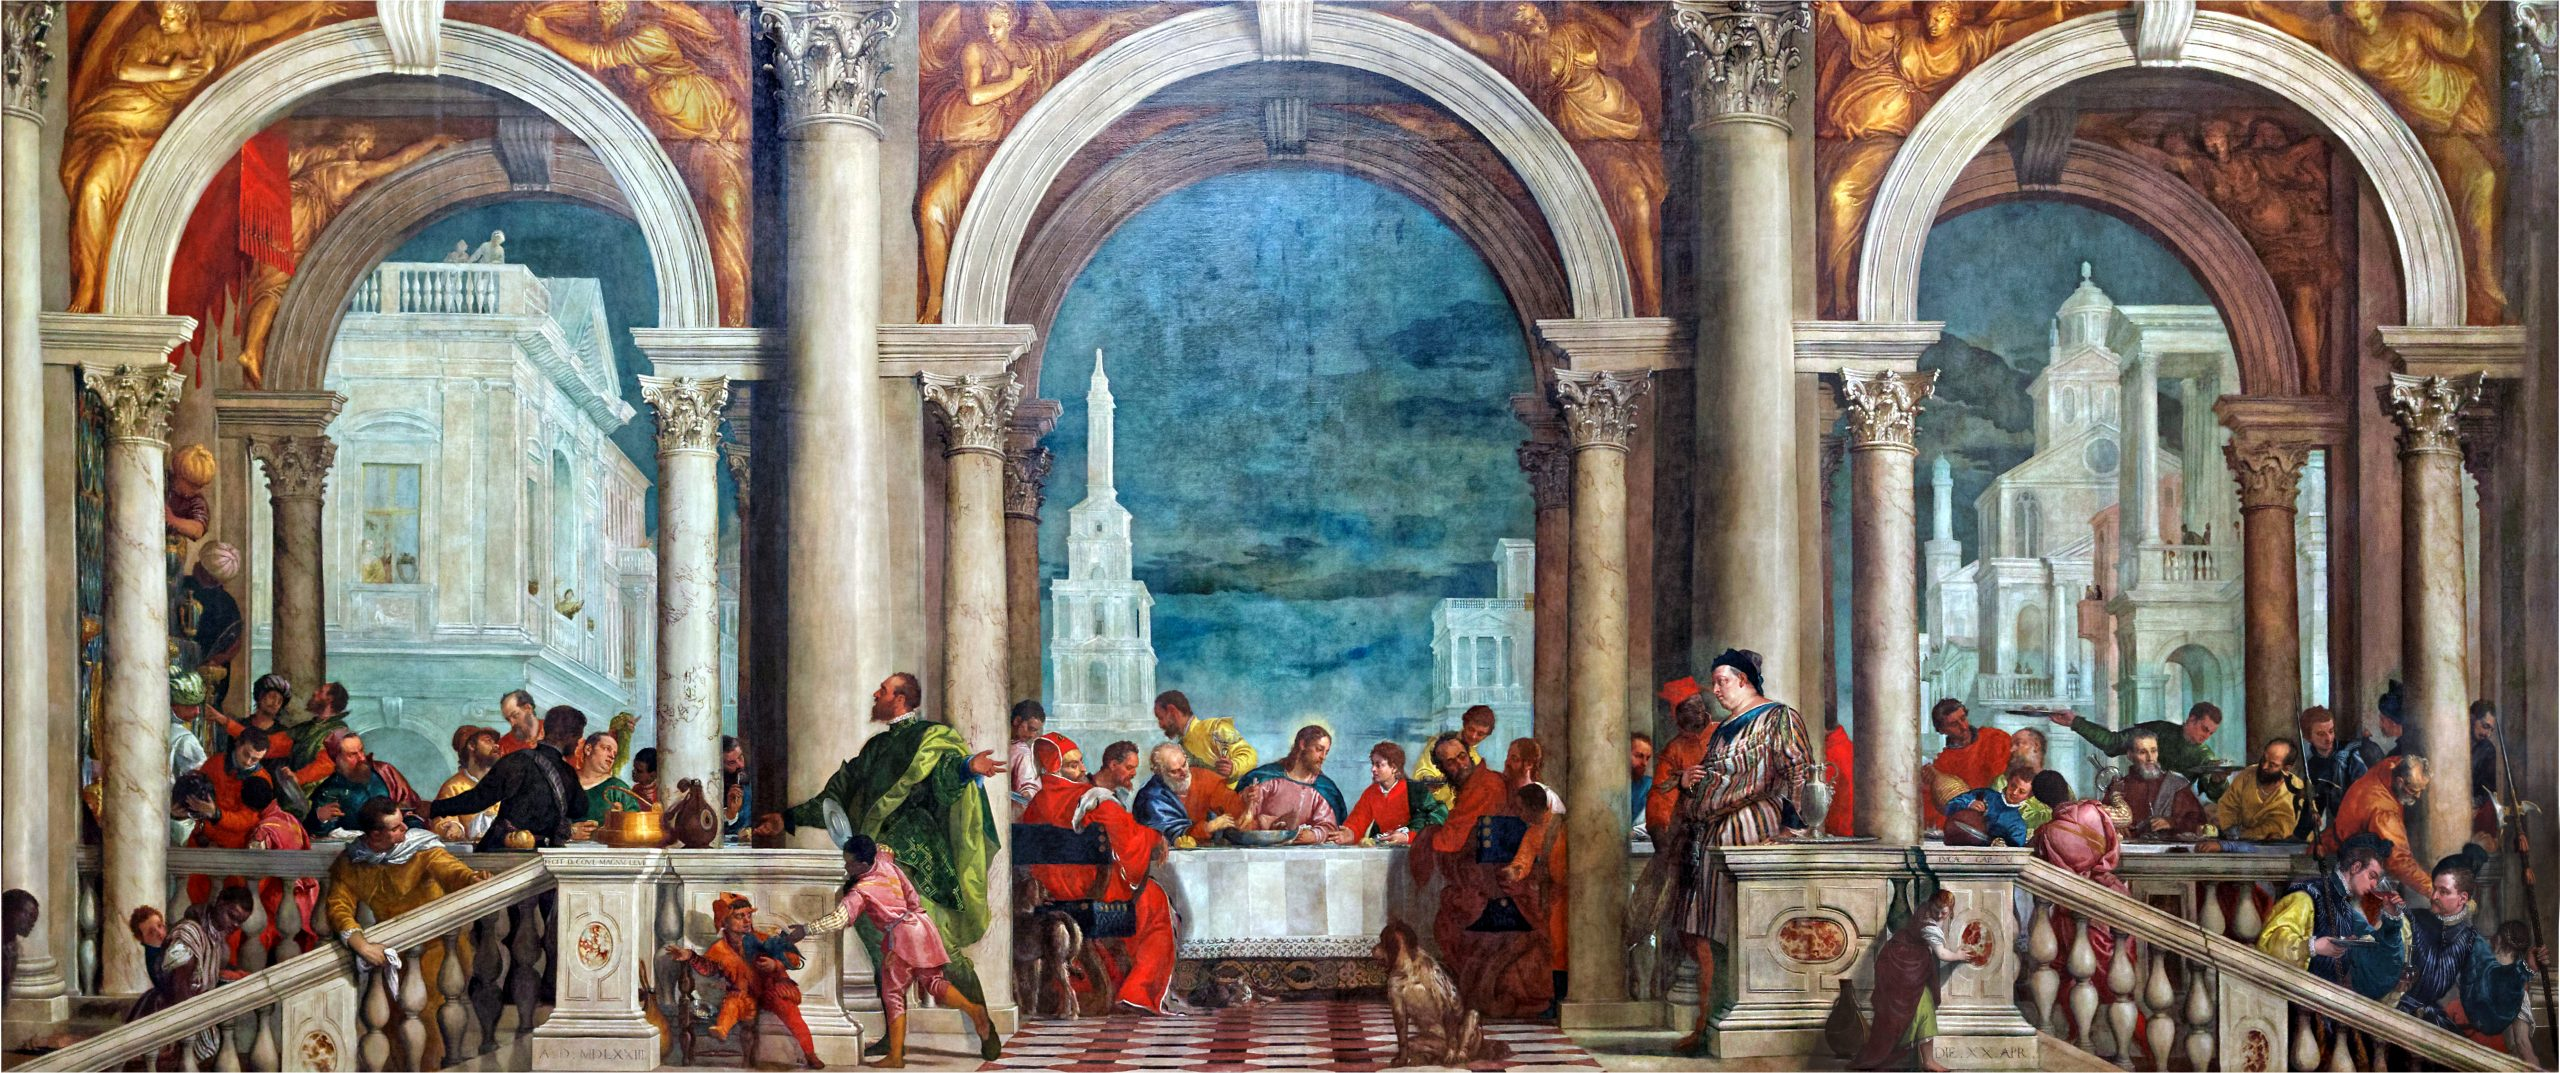 The Feast in the House of Levi - The colorful and crowded scene